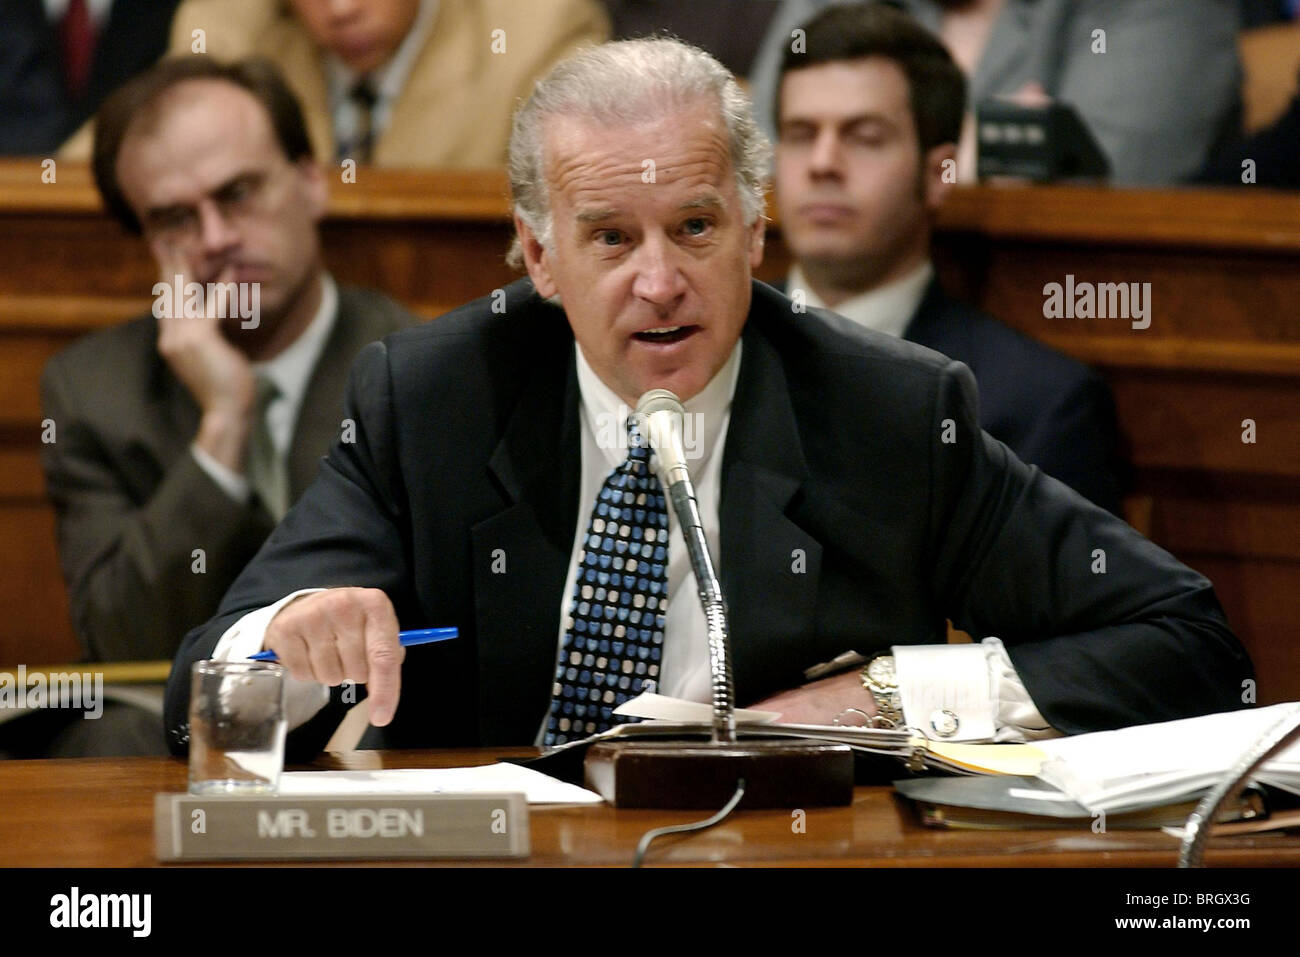 Senate Judiciary Committee Member Joeseph R. Biden (D-DE) speaks on Capitol Hill about President Bush's judicial - Stock Image